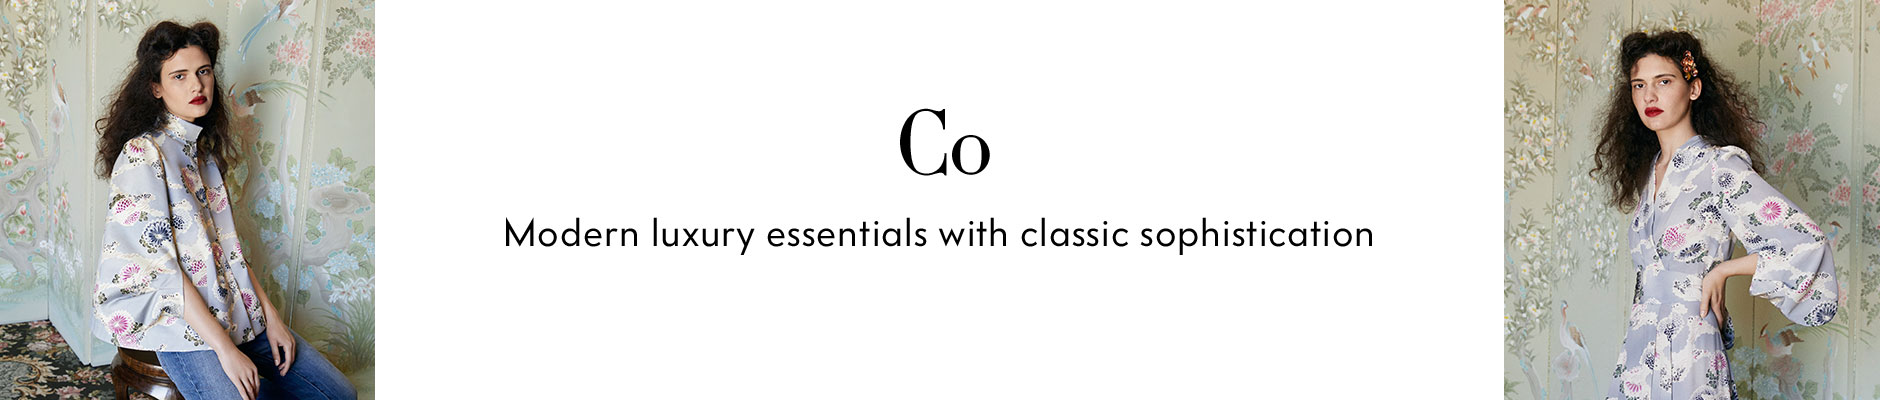 Co - Modern luxury essentials with classic sophistication